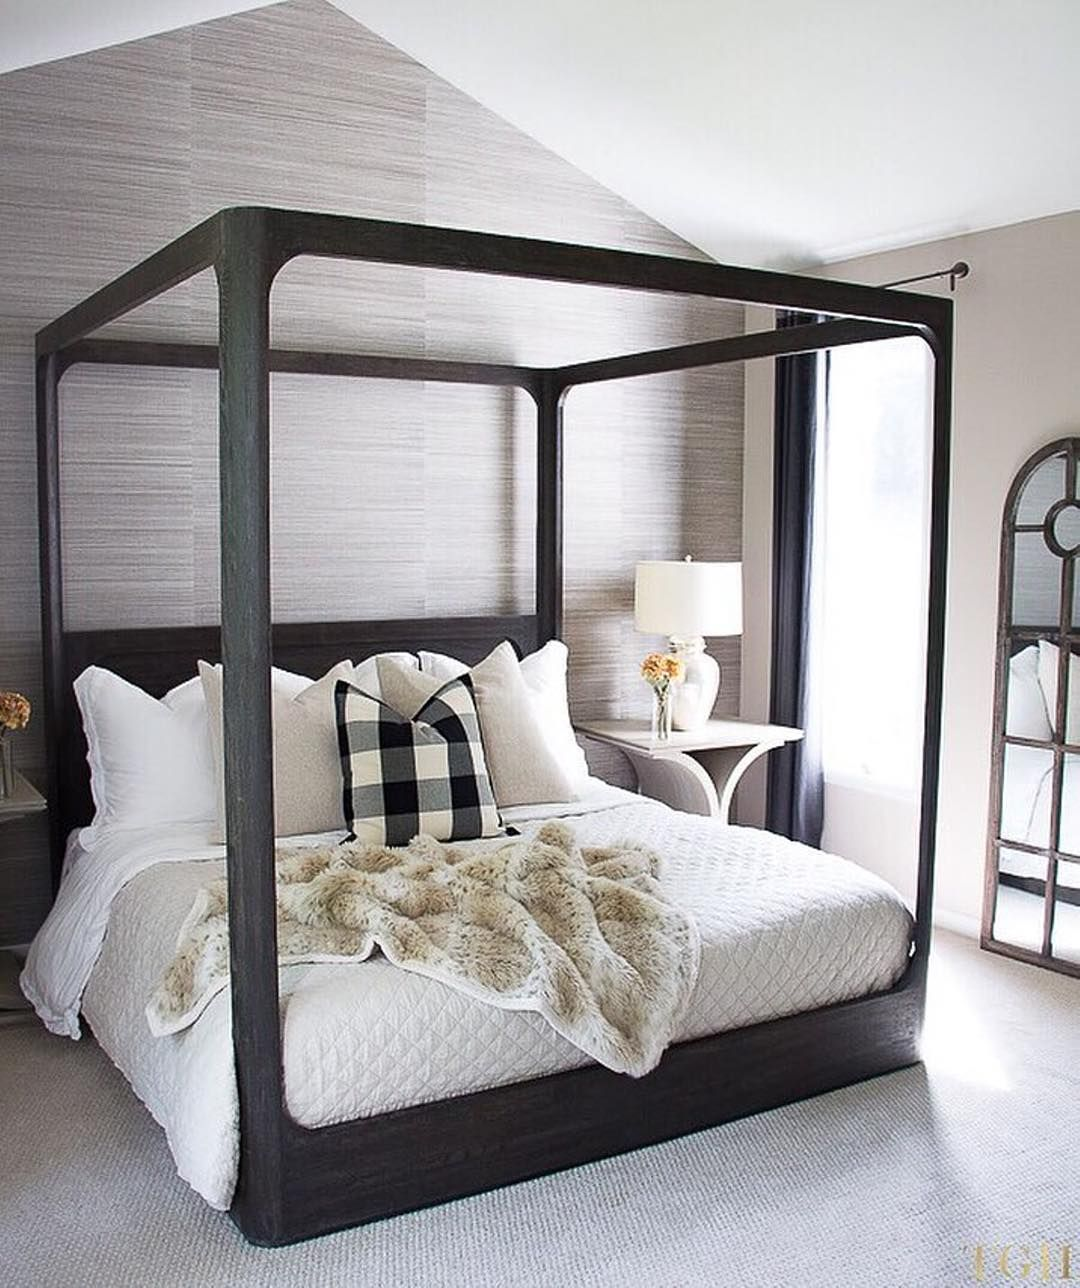 Classic Bedroom Escape Master Bedroom Ltkhome Opt For Sleek And Statement Making